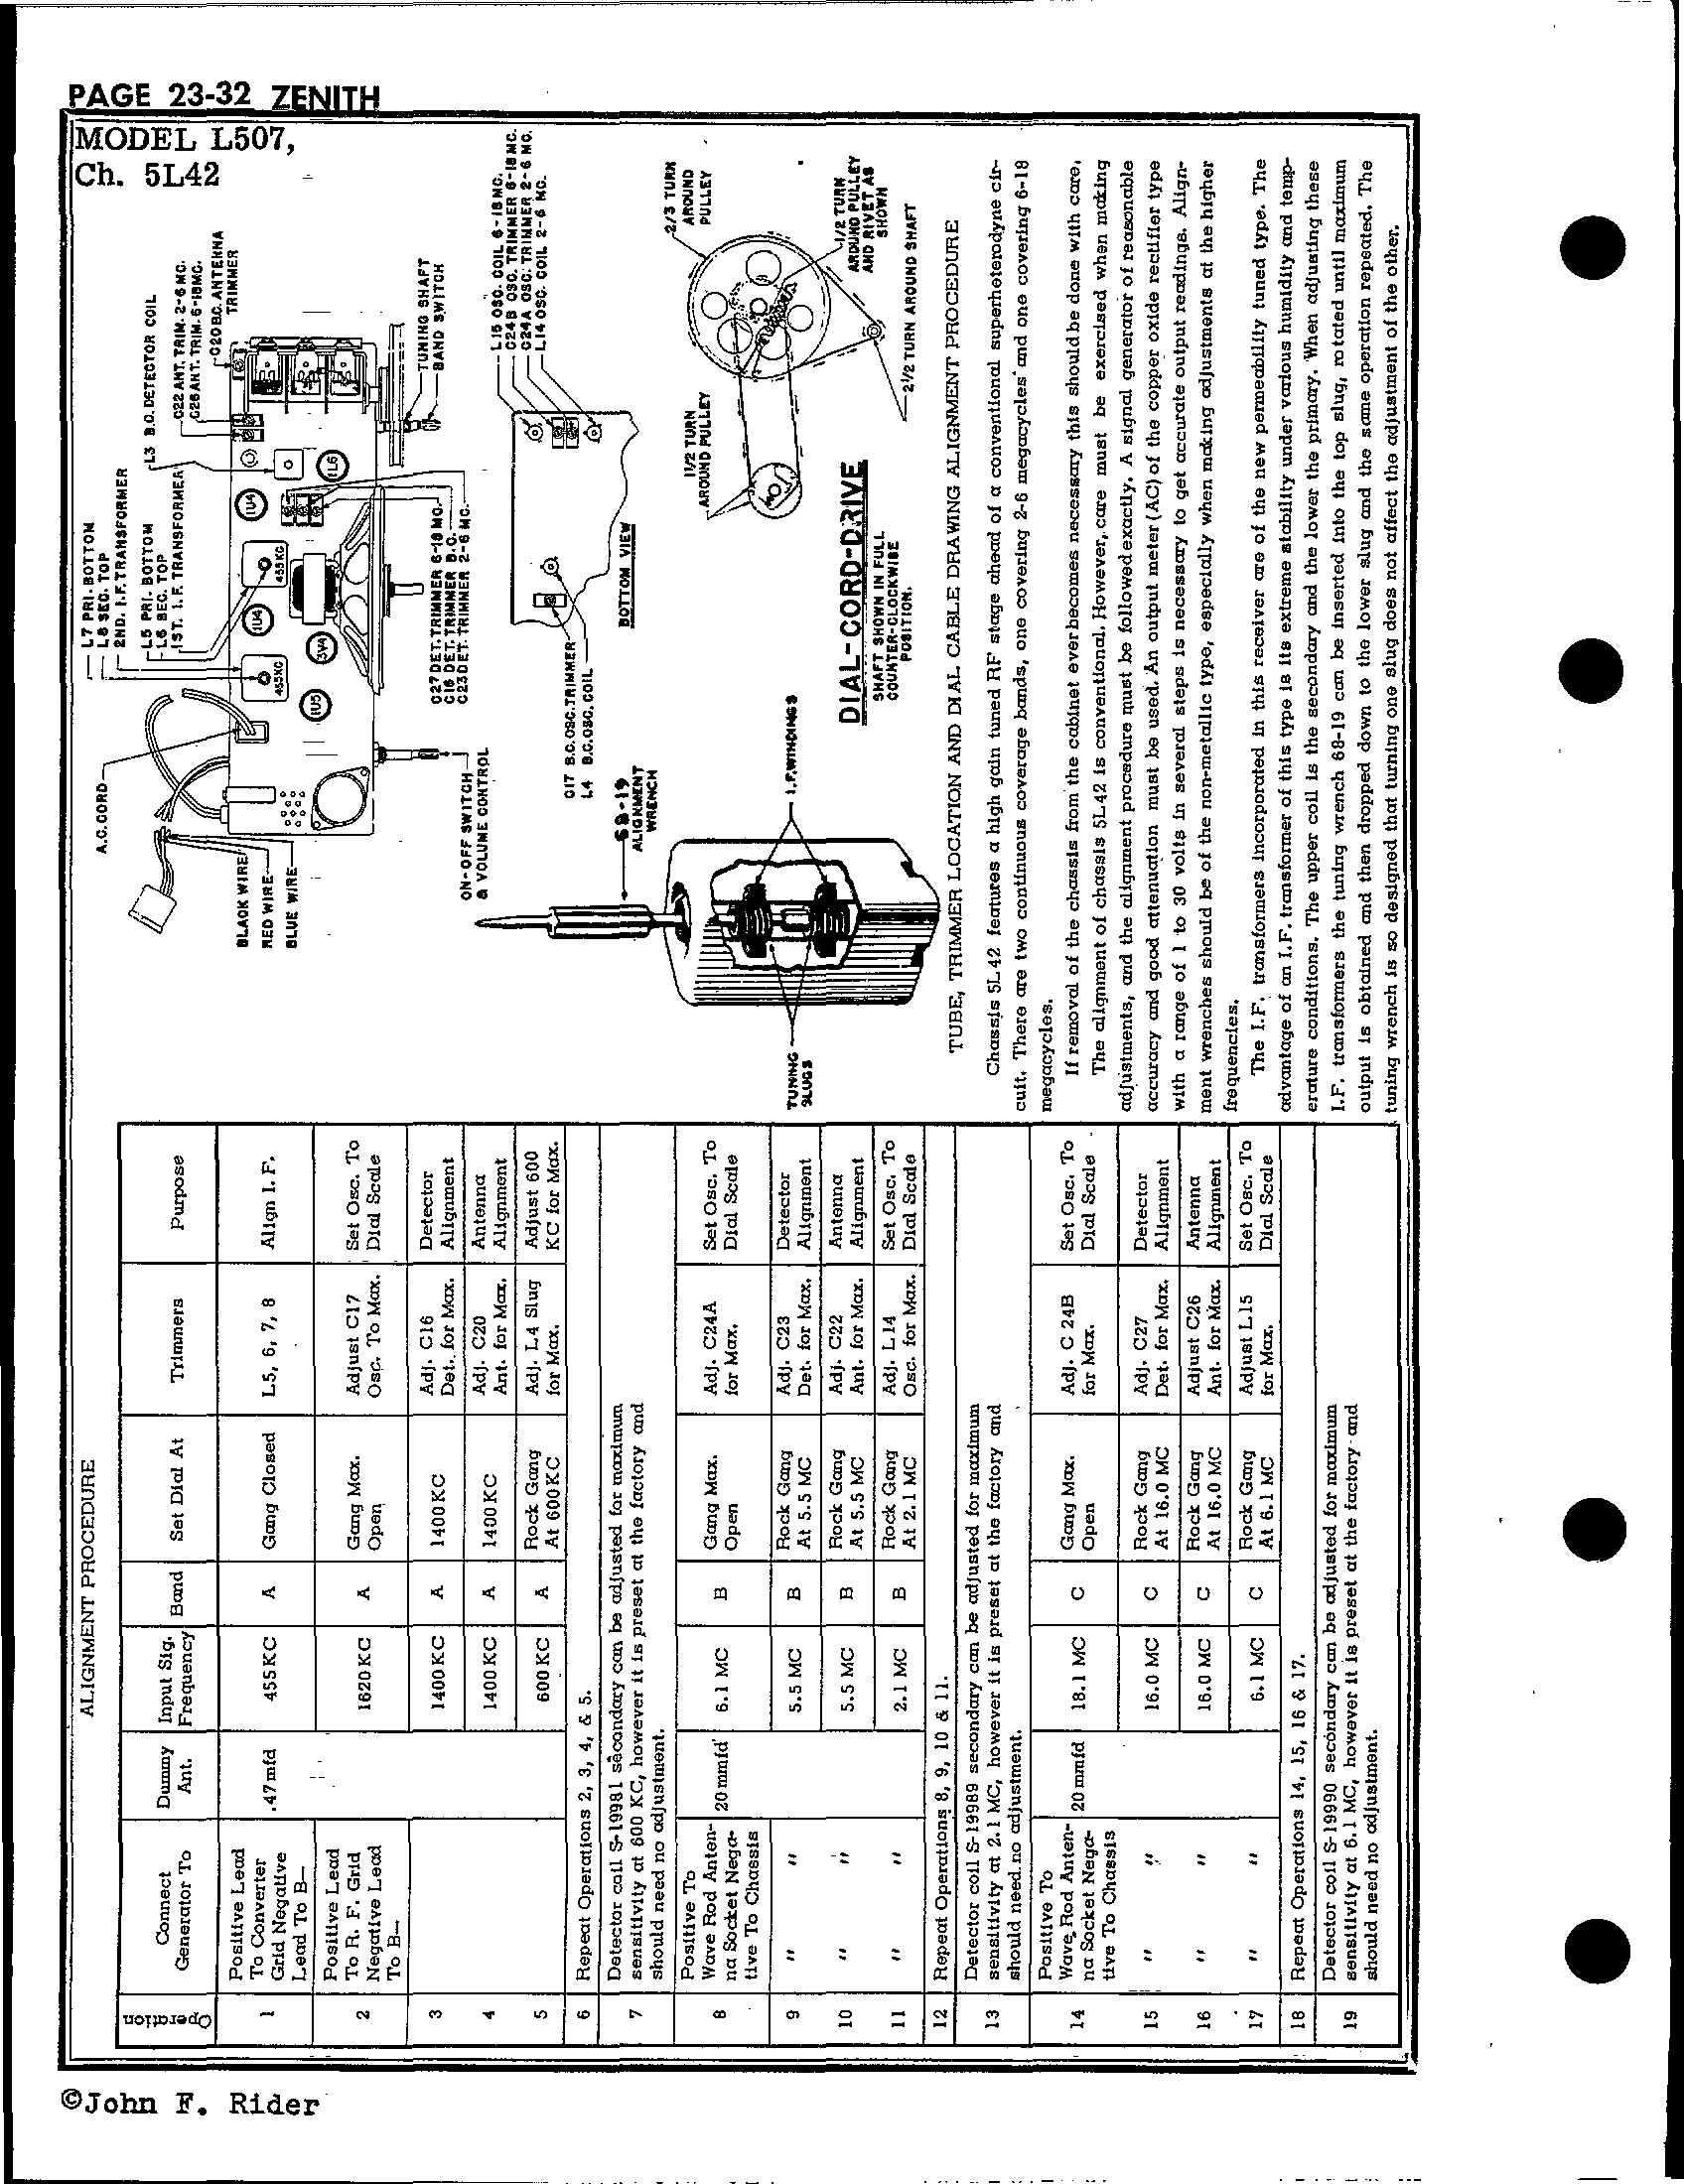 Zenith Radio Corp L507 Antique Electronic Supply. Page 1 8753 Kb Rider Manual Volume 23. Wiring. Zenith Tube Radio Schematics N73 1 At Scoala.co